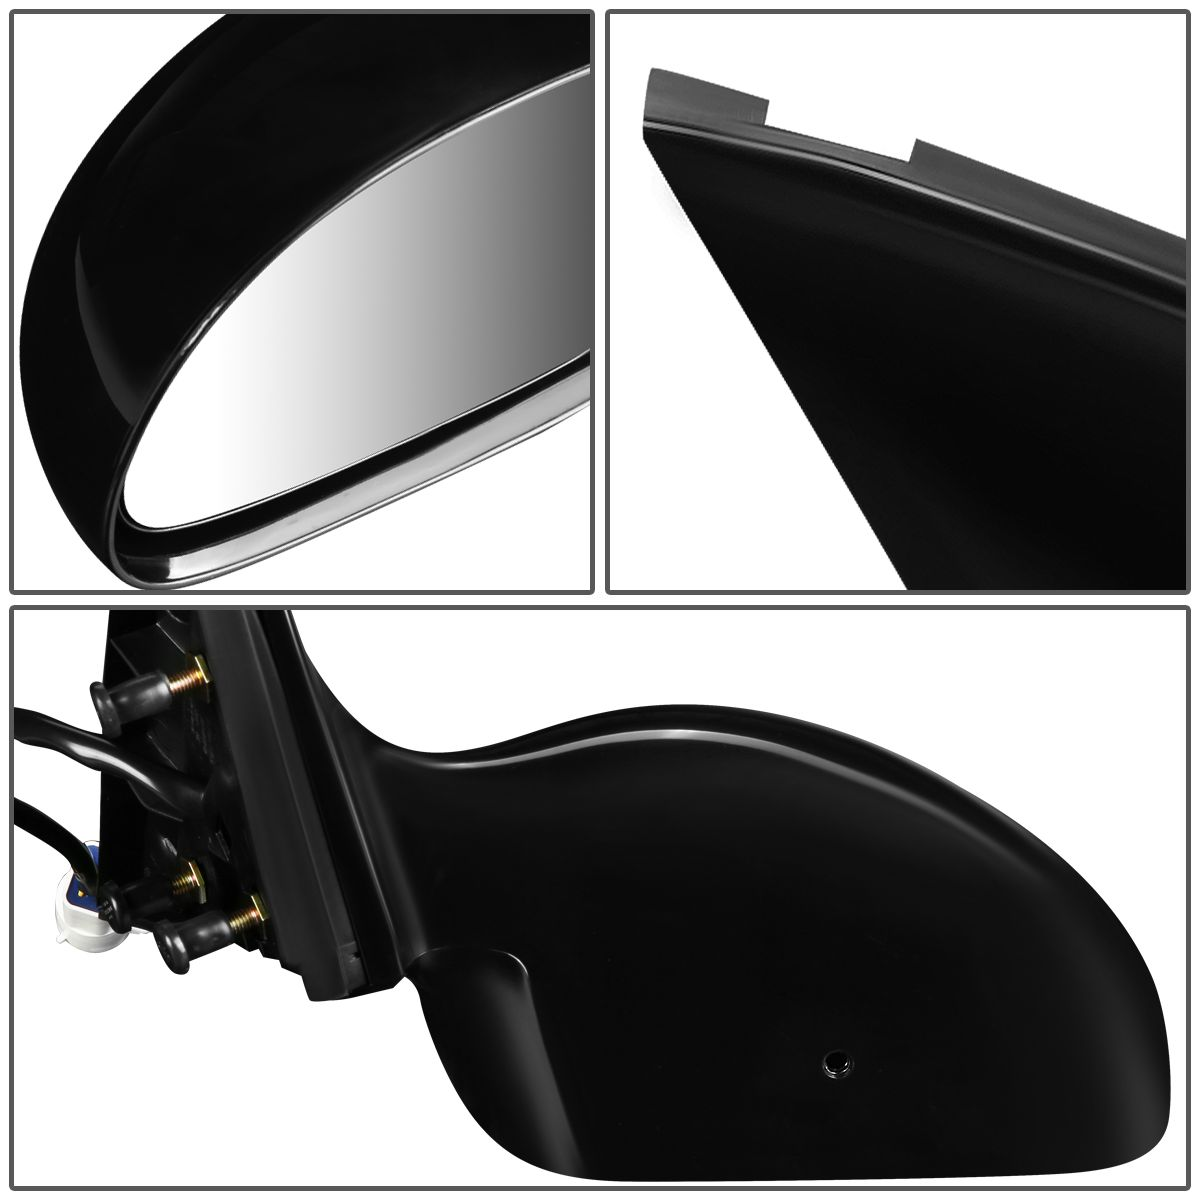 New Passenger Side Mirror For Ford Taurus 1996-1999 FO1321122